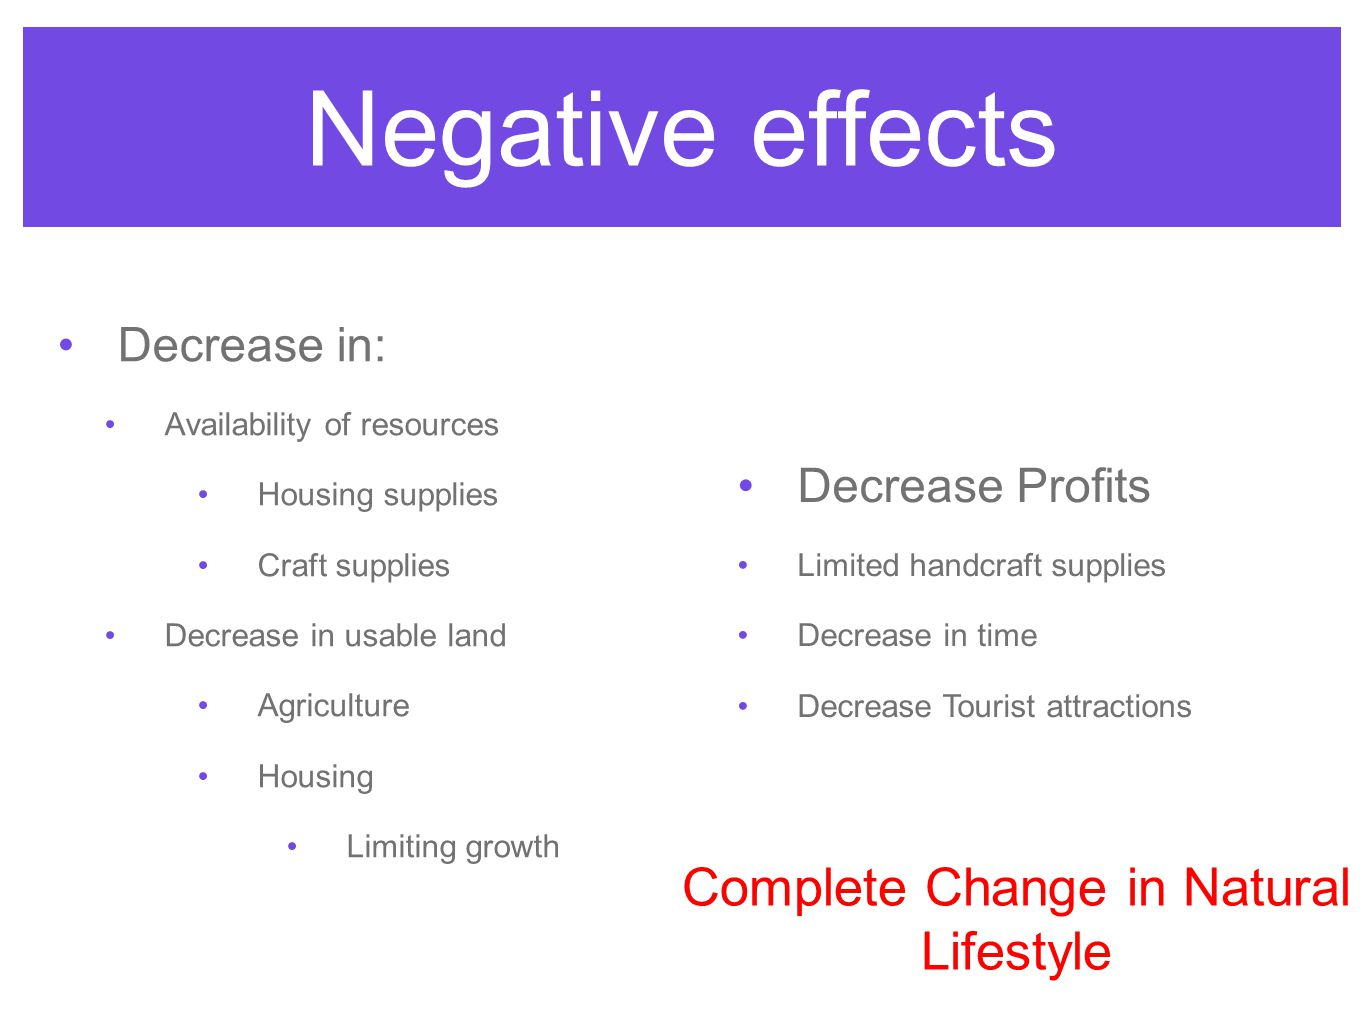 Negative effects Decrease in: Availability of resources Housing supplies Craft supplies Decrease in usable land Agriculture Housing Limiting growth Decrease Profits Limited handcraft supplies Decrease in time Decrease Tourist attractions Complete Change in Natural Lifestyle